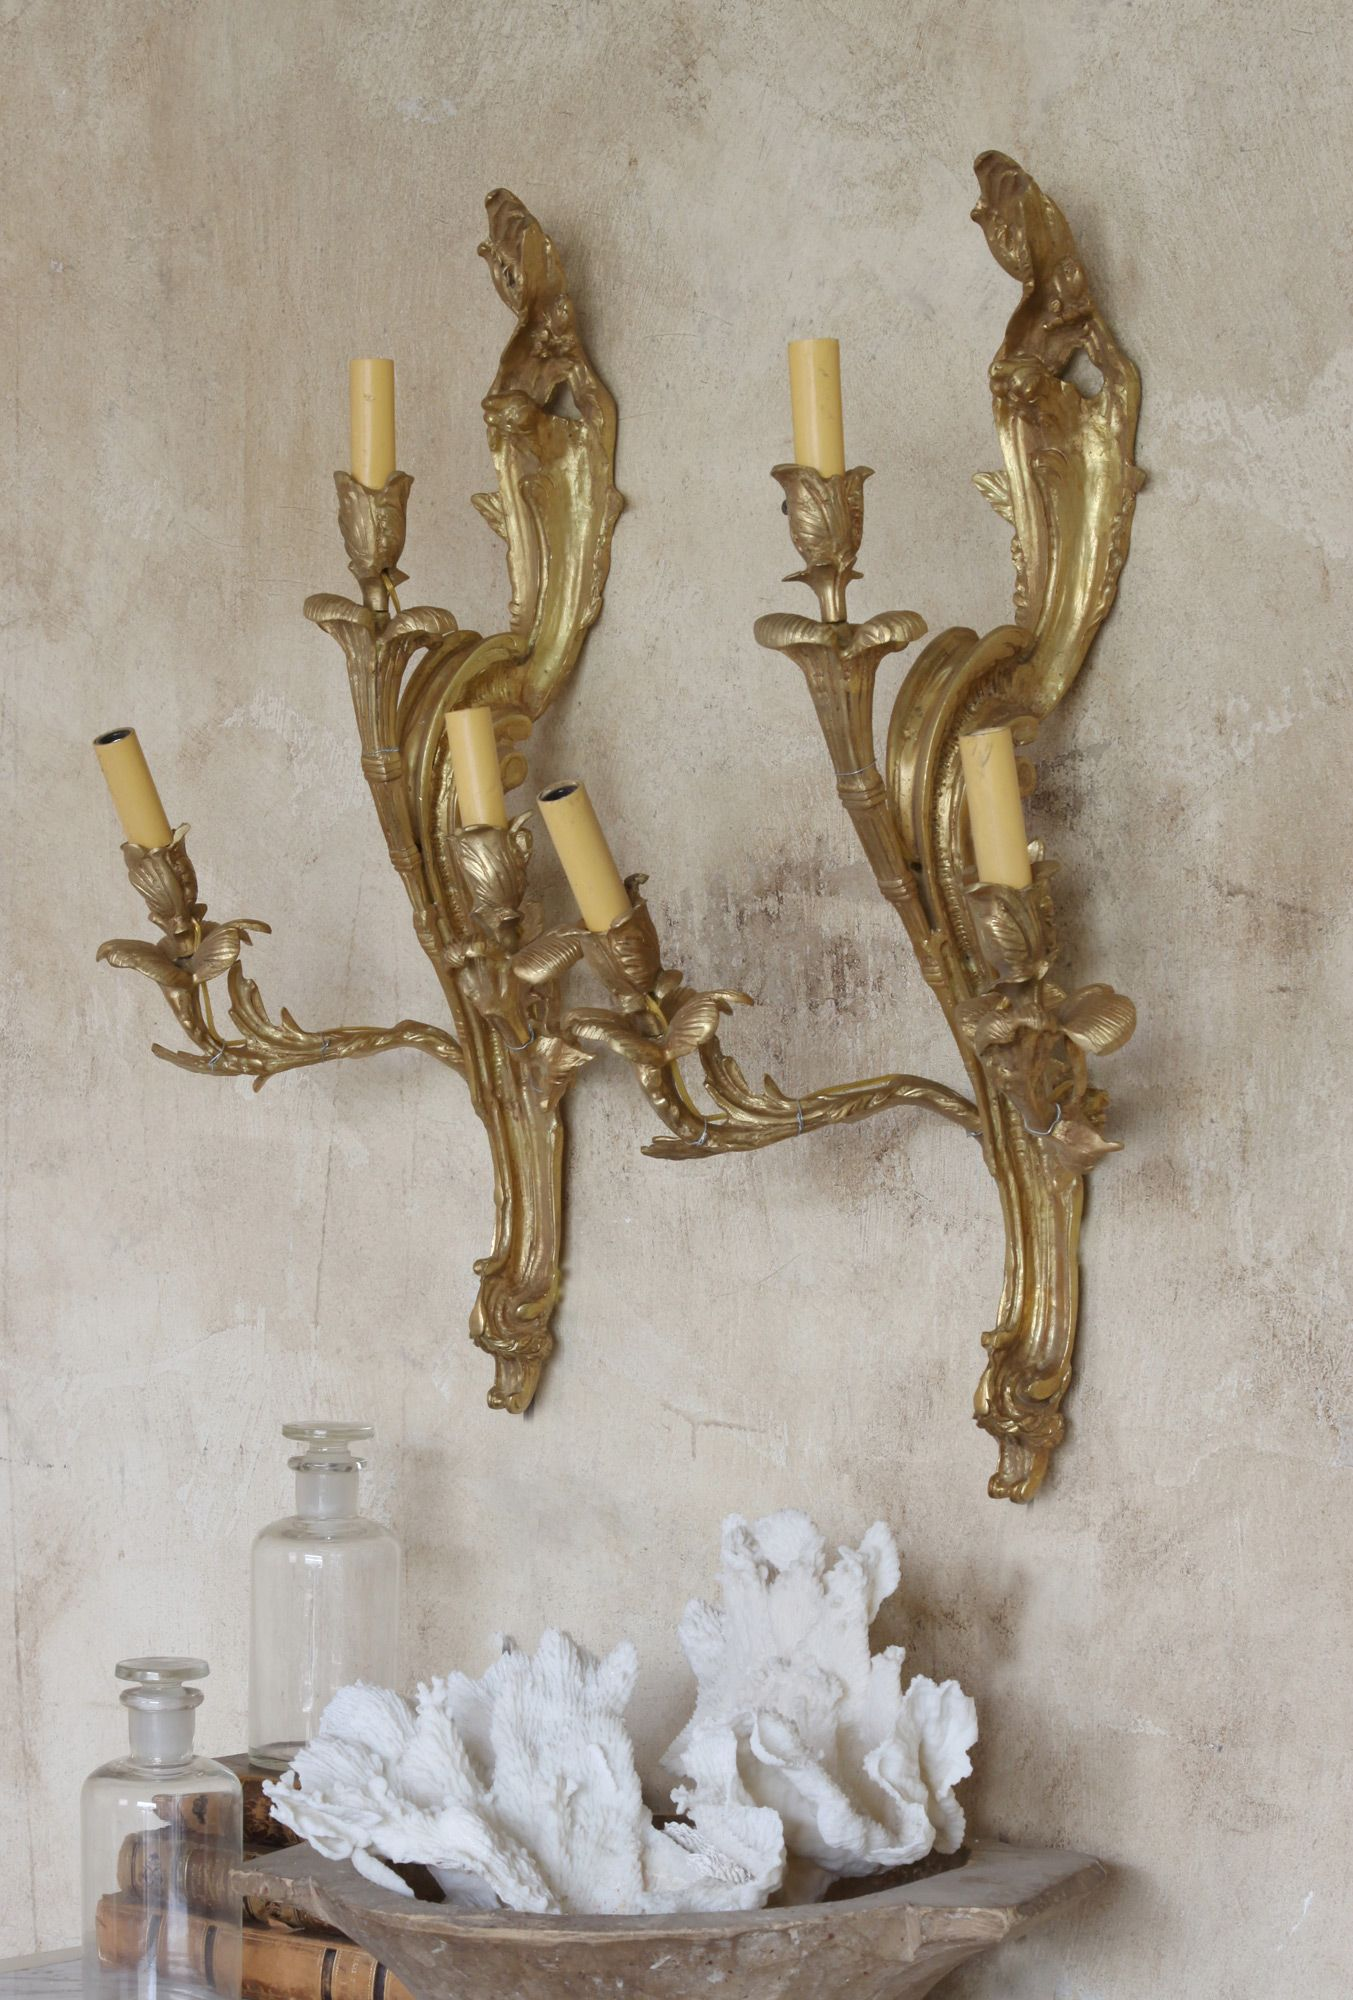 Vintage Reproduction Wall Sconces.jpg